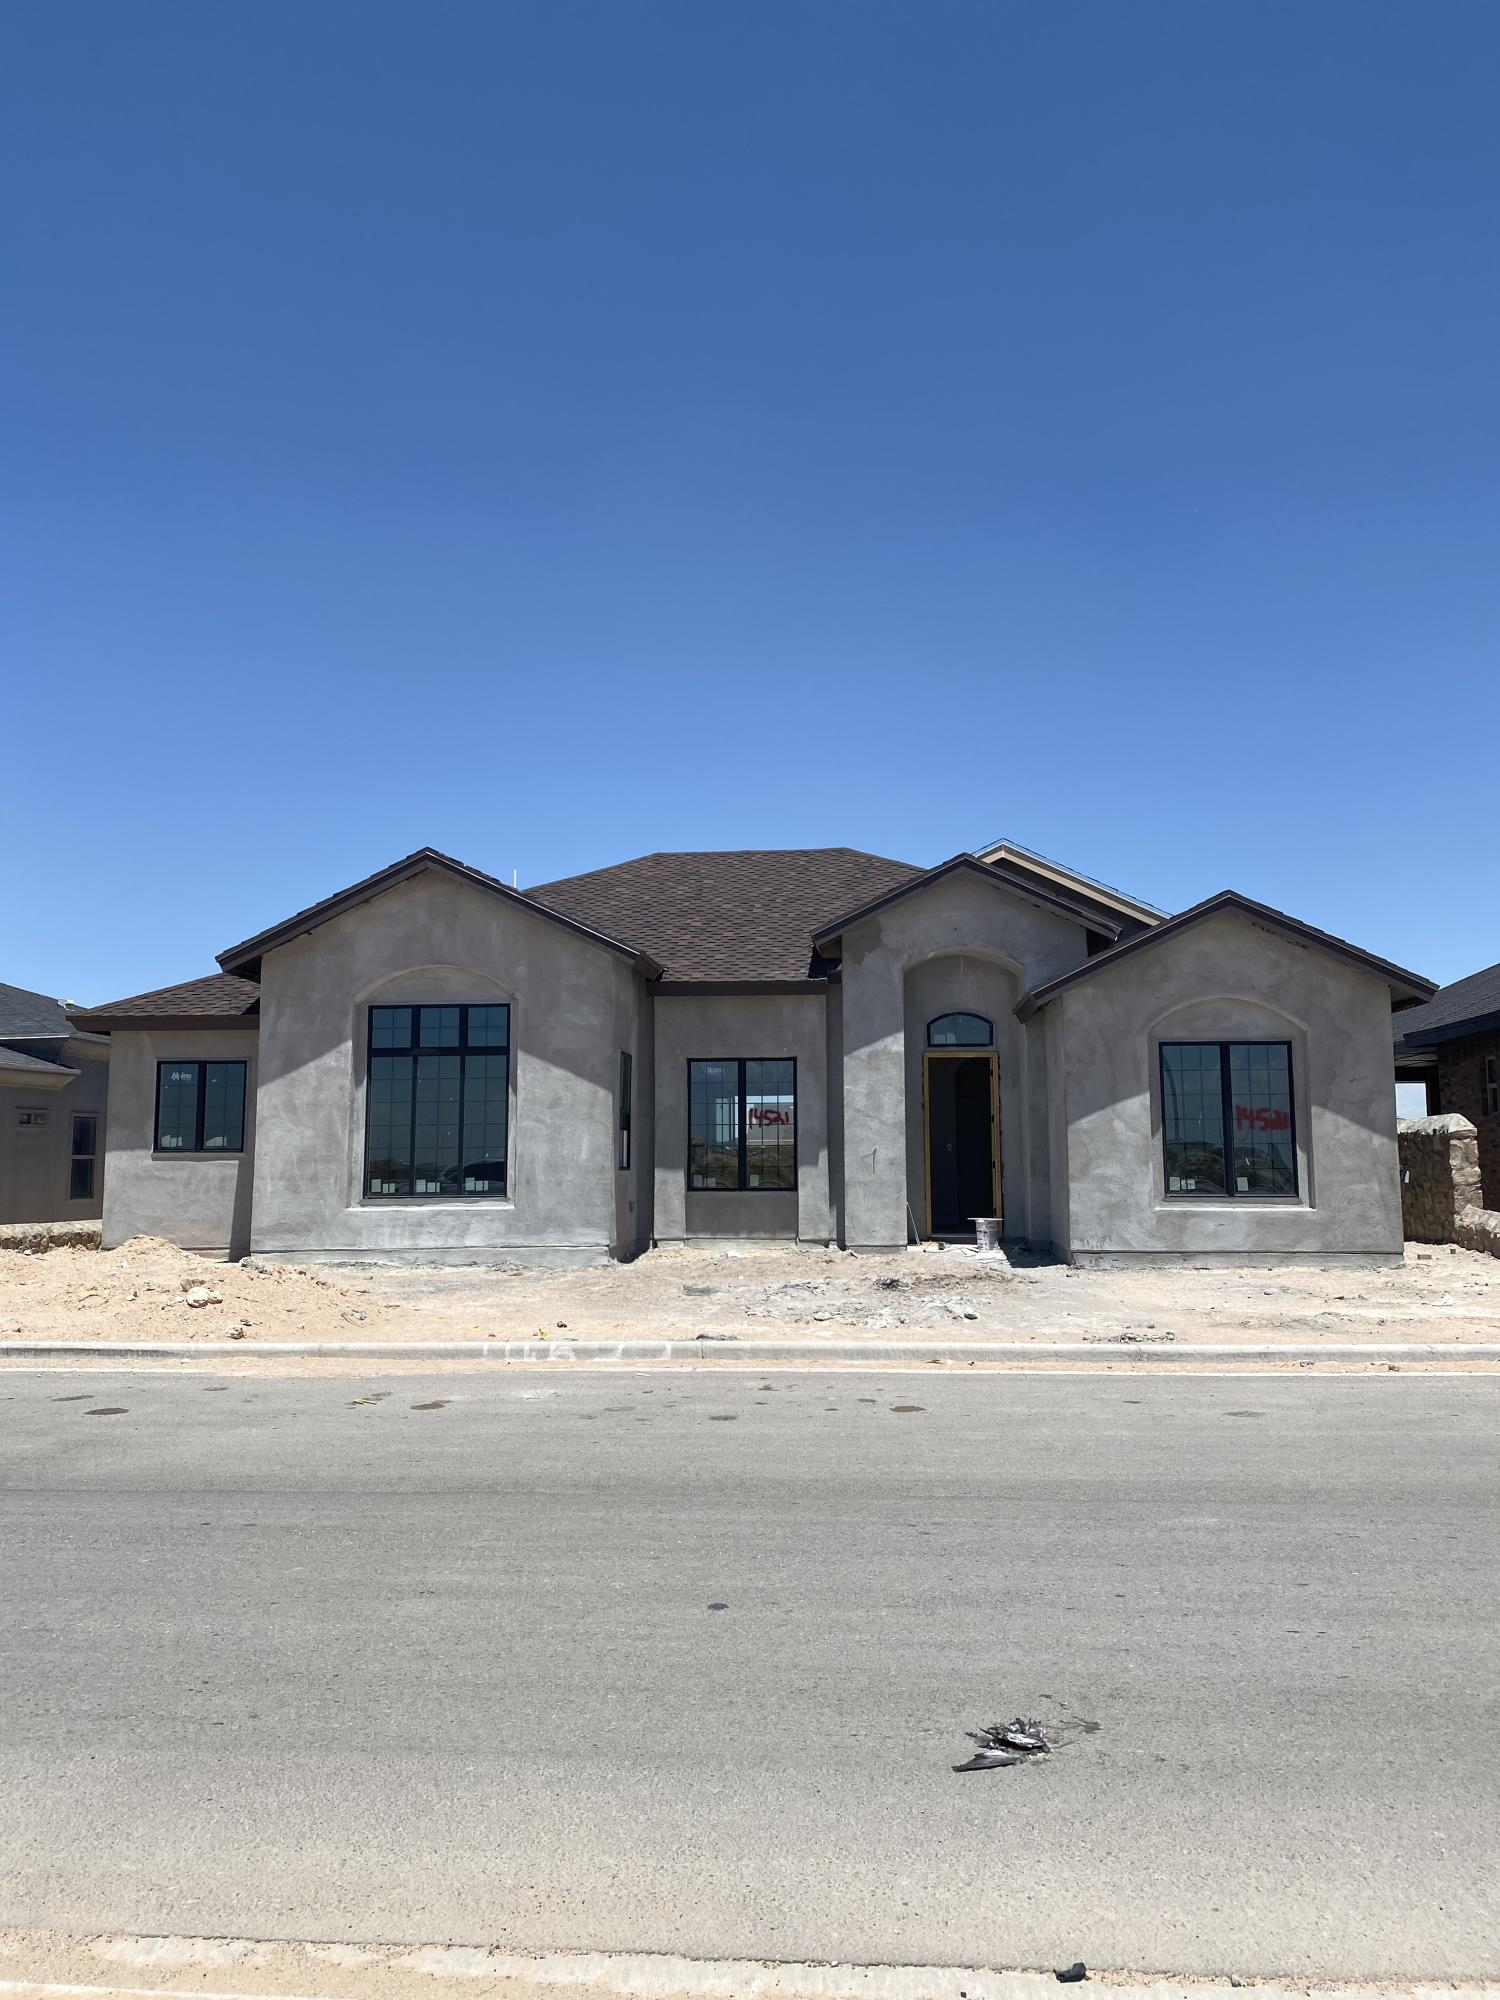 14541 Charles Foster, El Paso, Texas 79938, 4 Bedrooms Bedrooms, ,3 BathroomsBathrooms,Residential,For sale,Charles Foster,816857